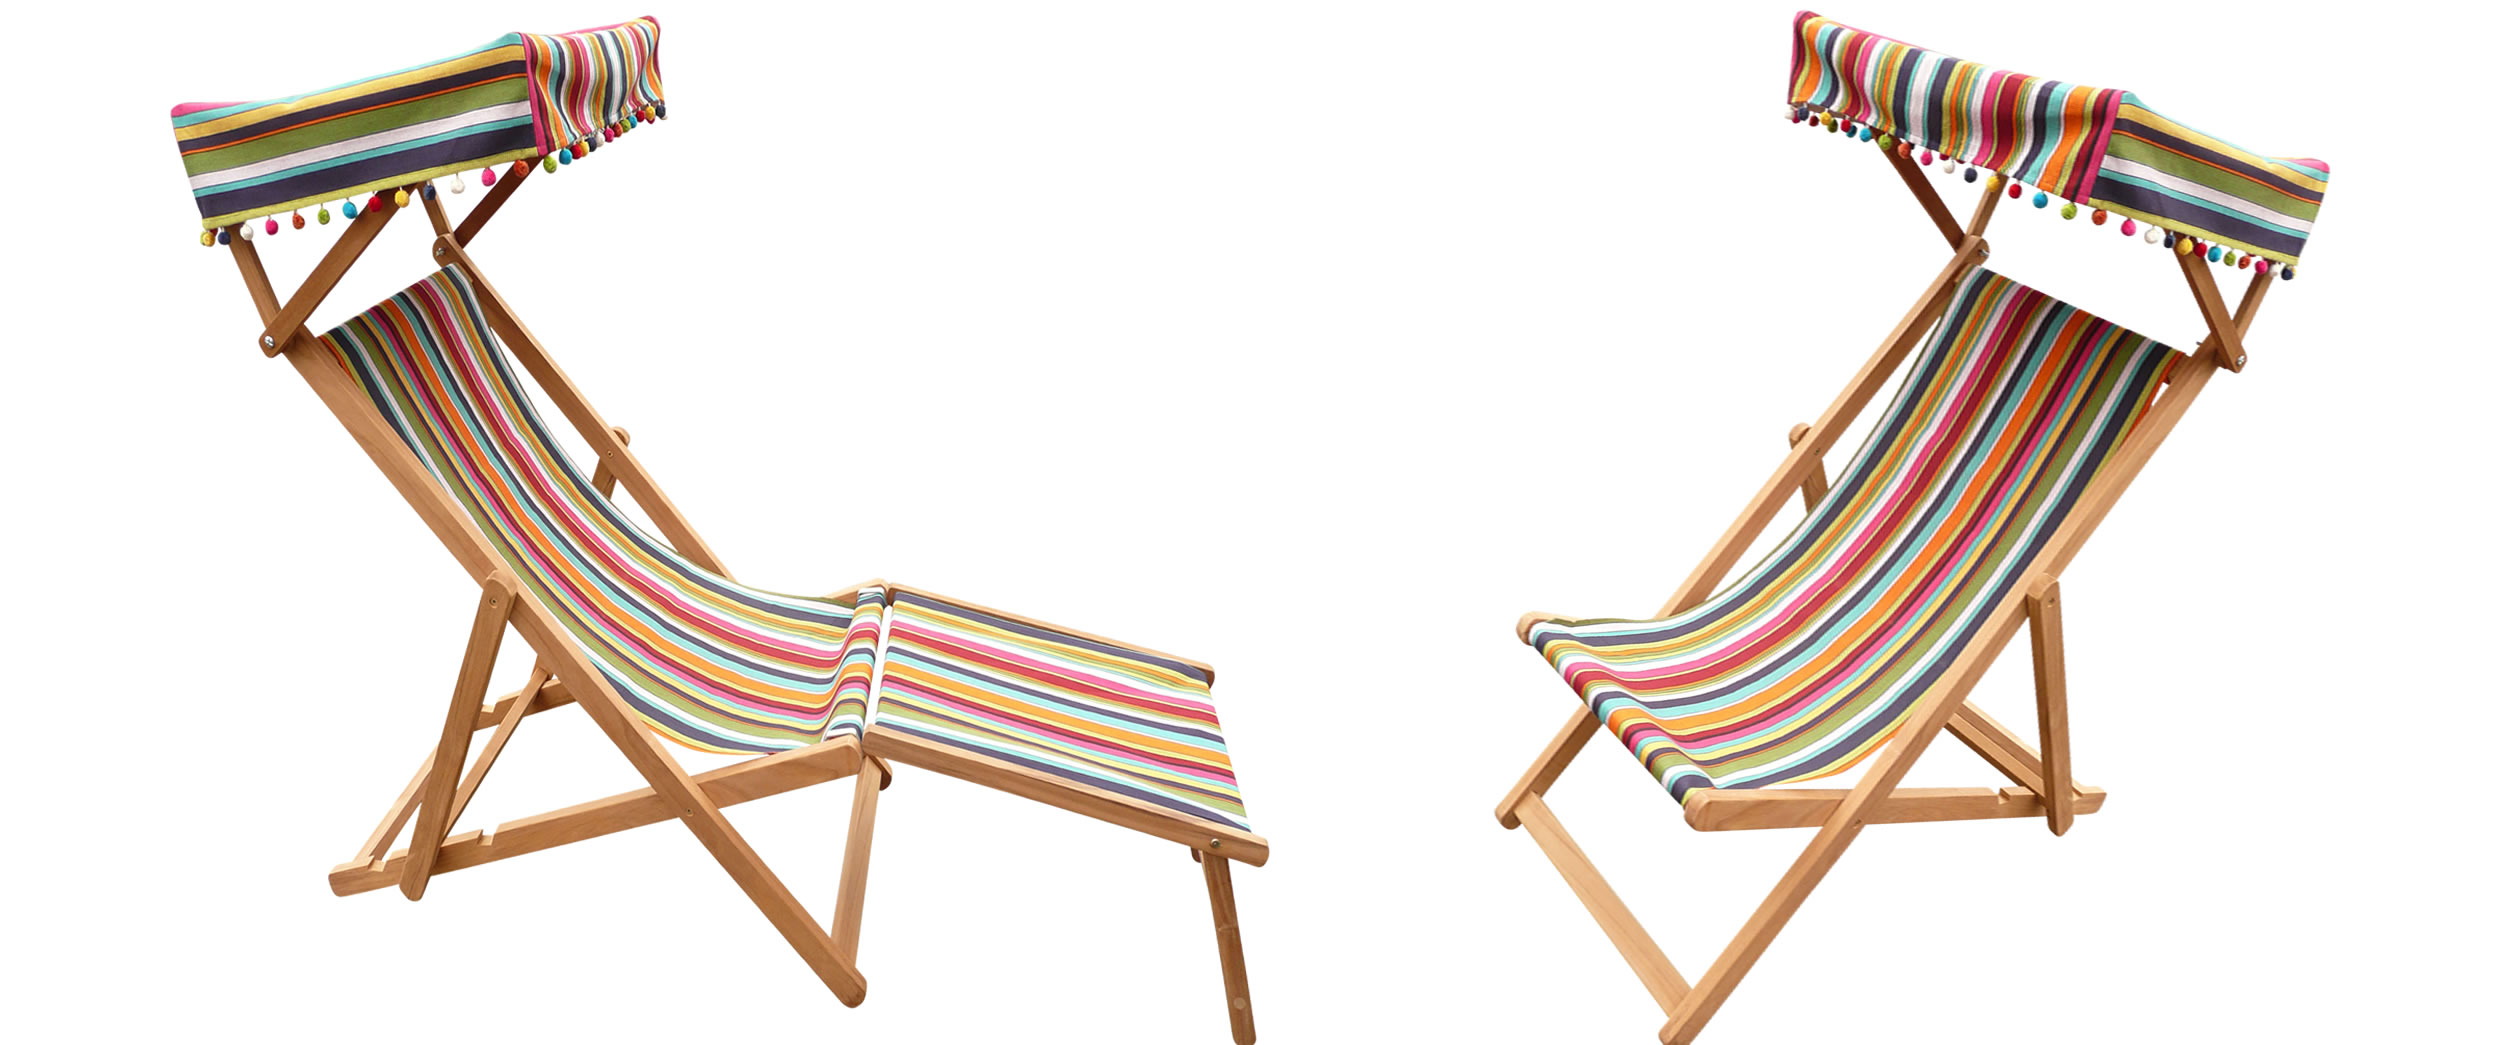 Wooden Deck Chairs For Sale